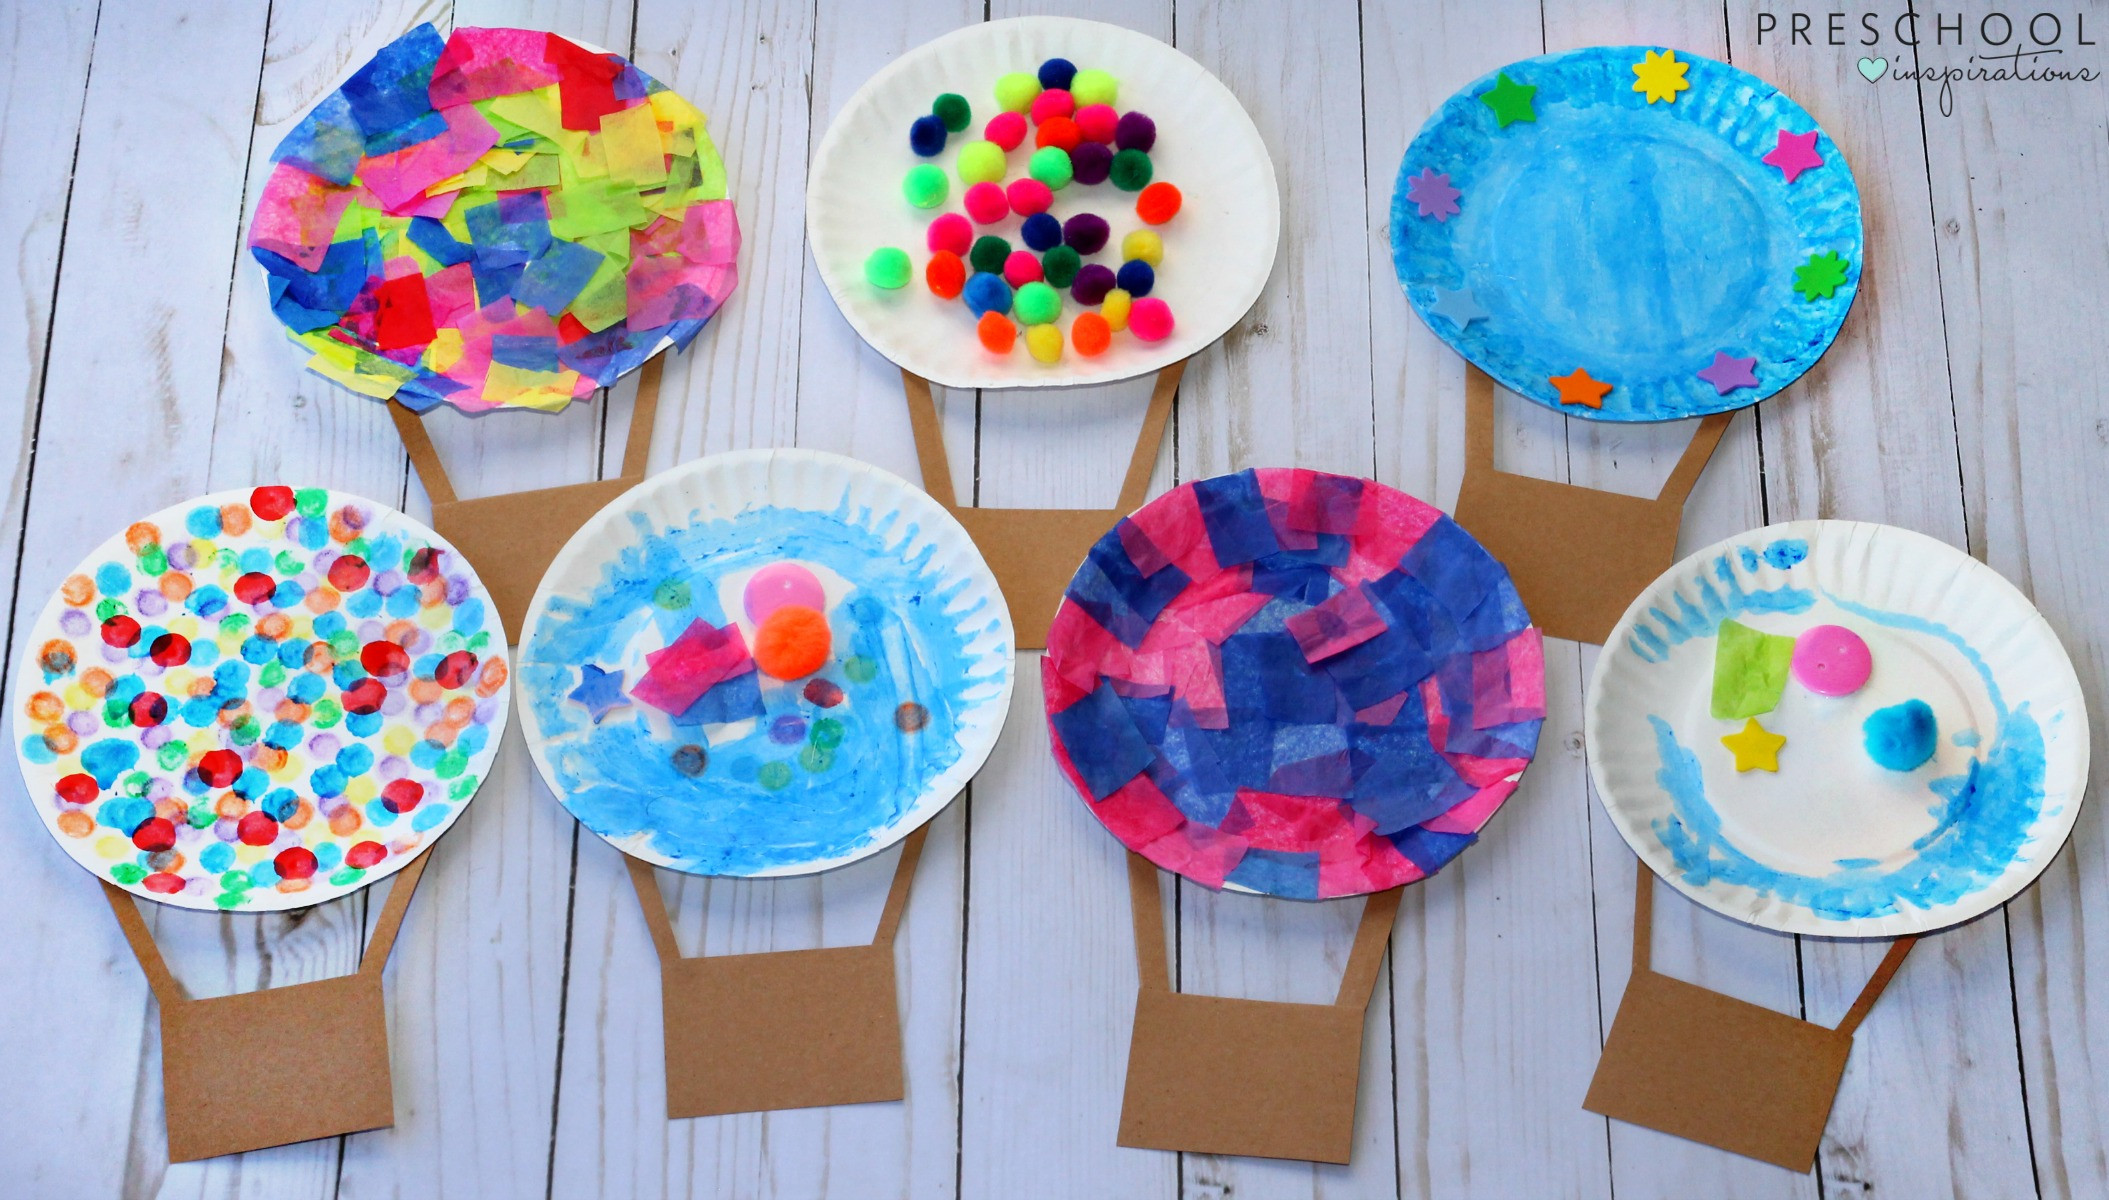 Best ideas about Art Activity For Preschoolers . Save or Pin Hot Air Balloon Process Art Activity Preschool Inspirations Now.